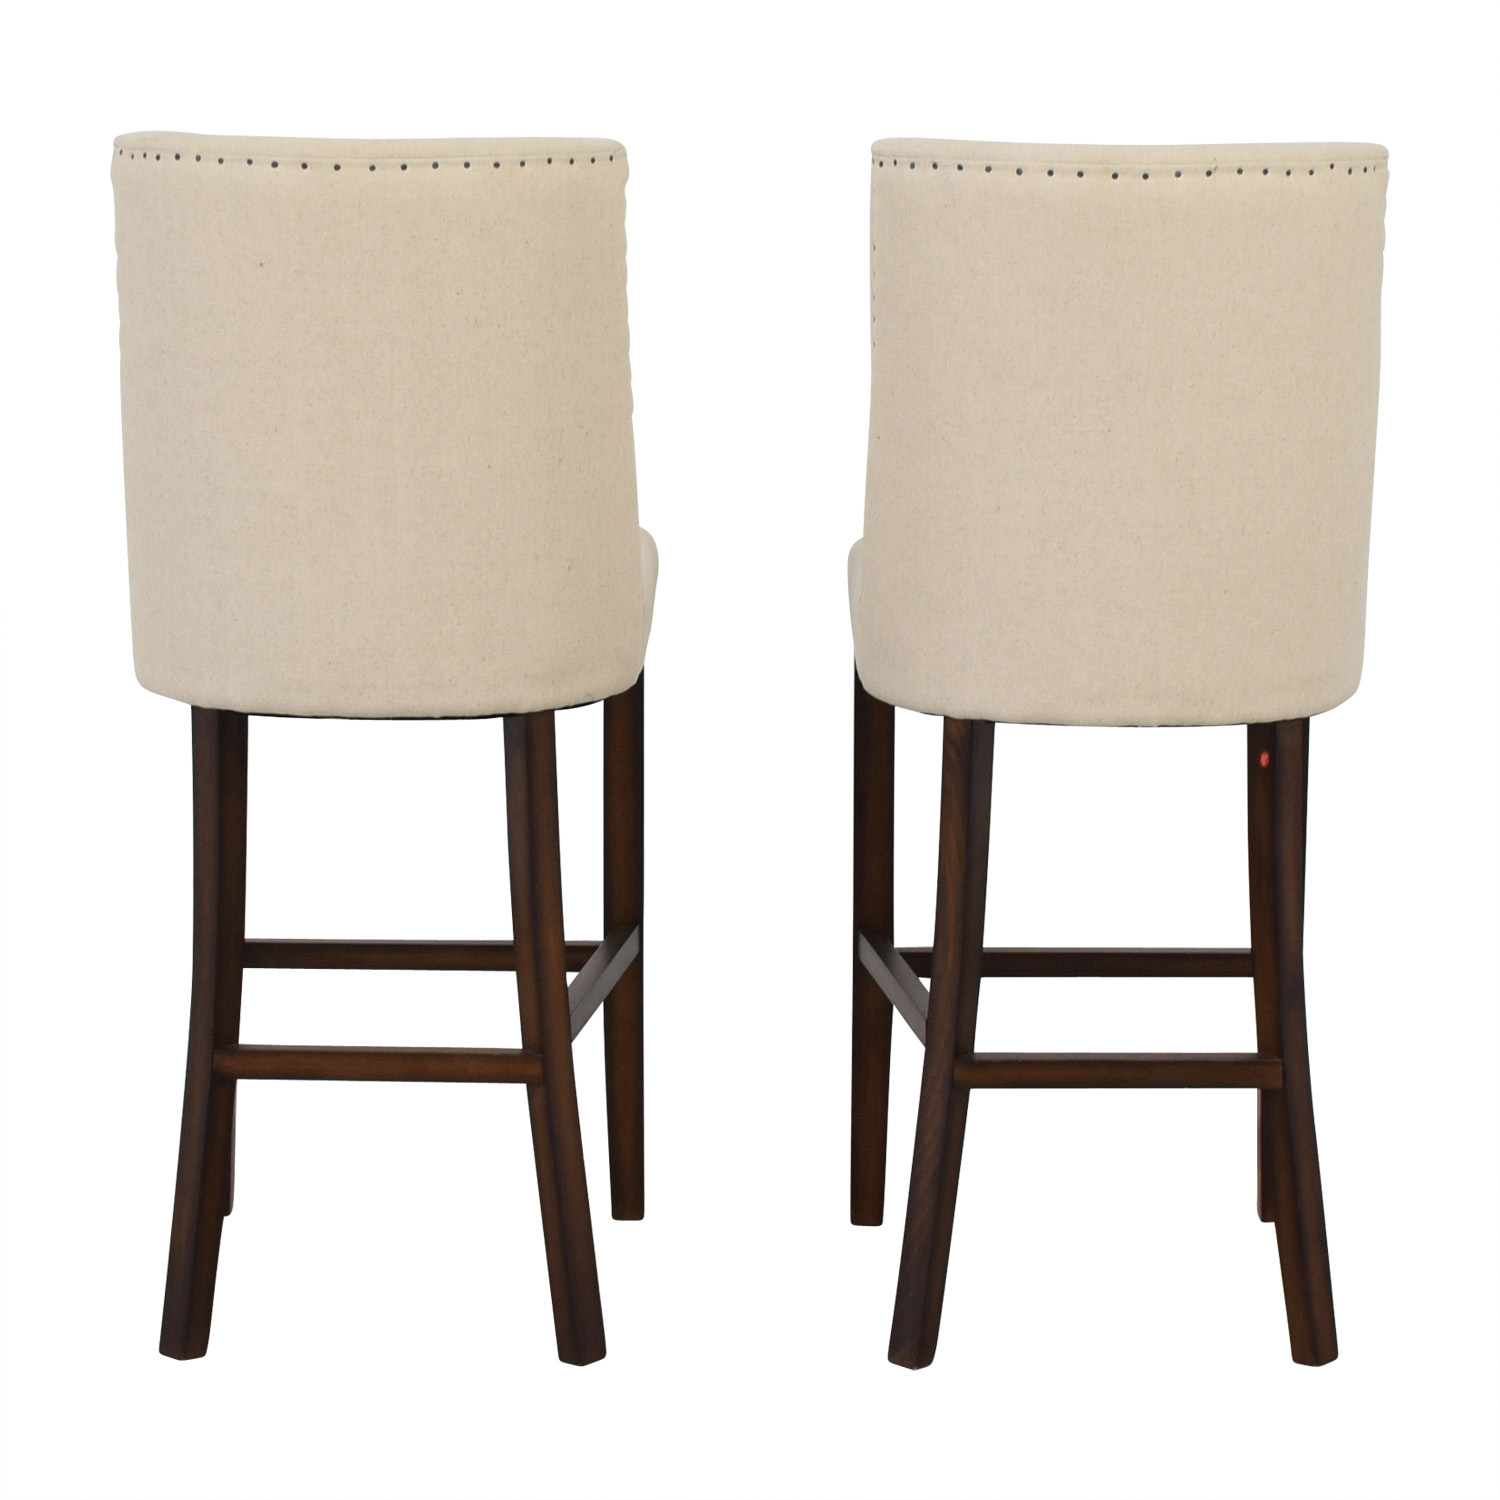 Joss & Main Joss & Main Cottonwood Bar Stools Sofas